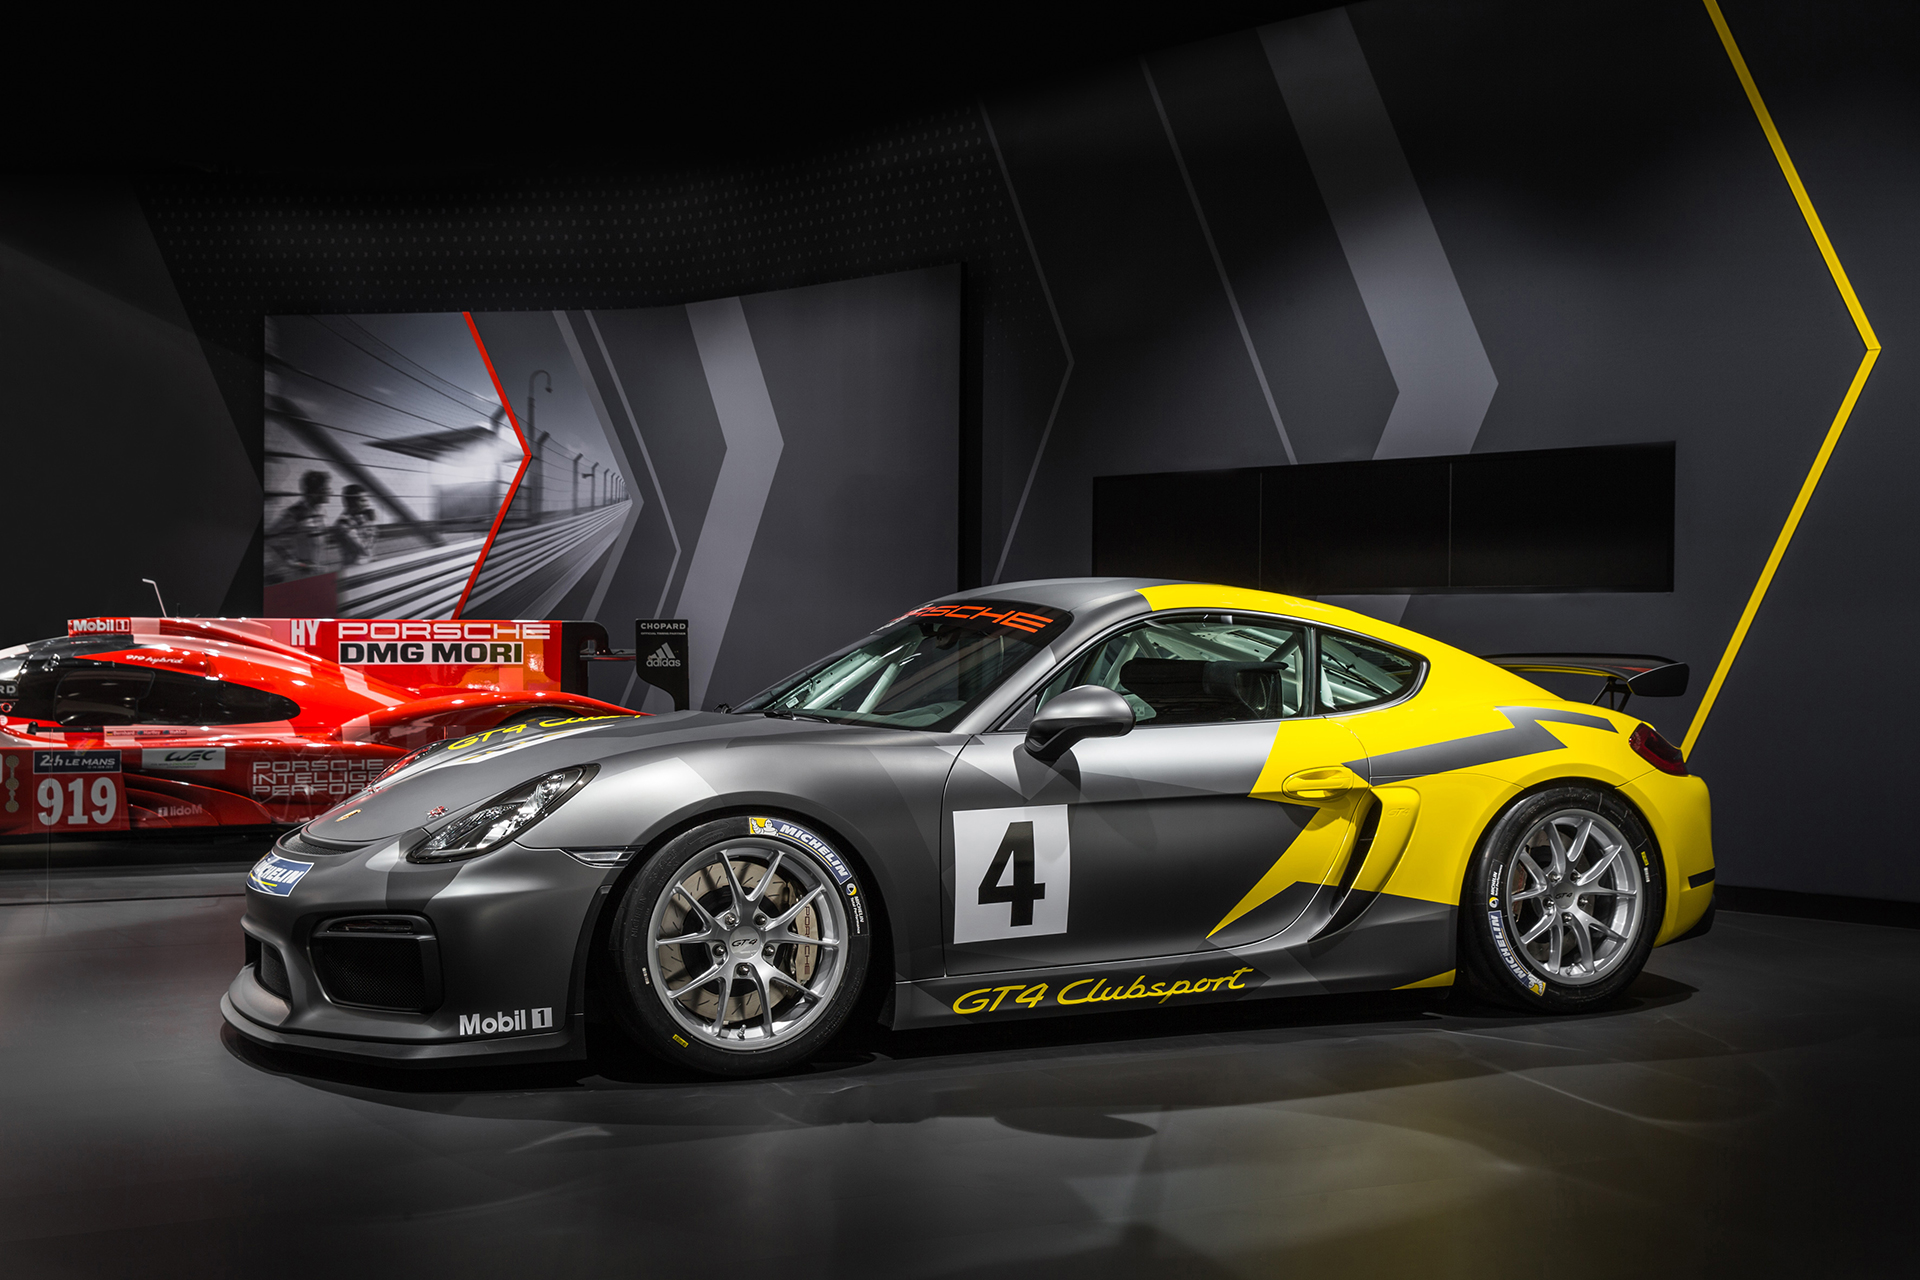 Porsche Cayman GT4 Clubsport - 2015 - profil / side-face - Los Angeles Auto Show